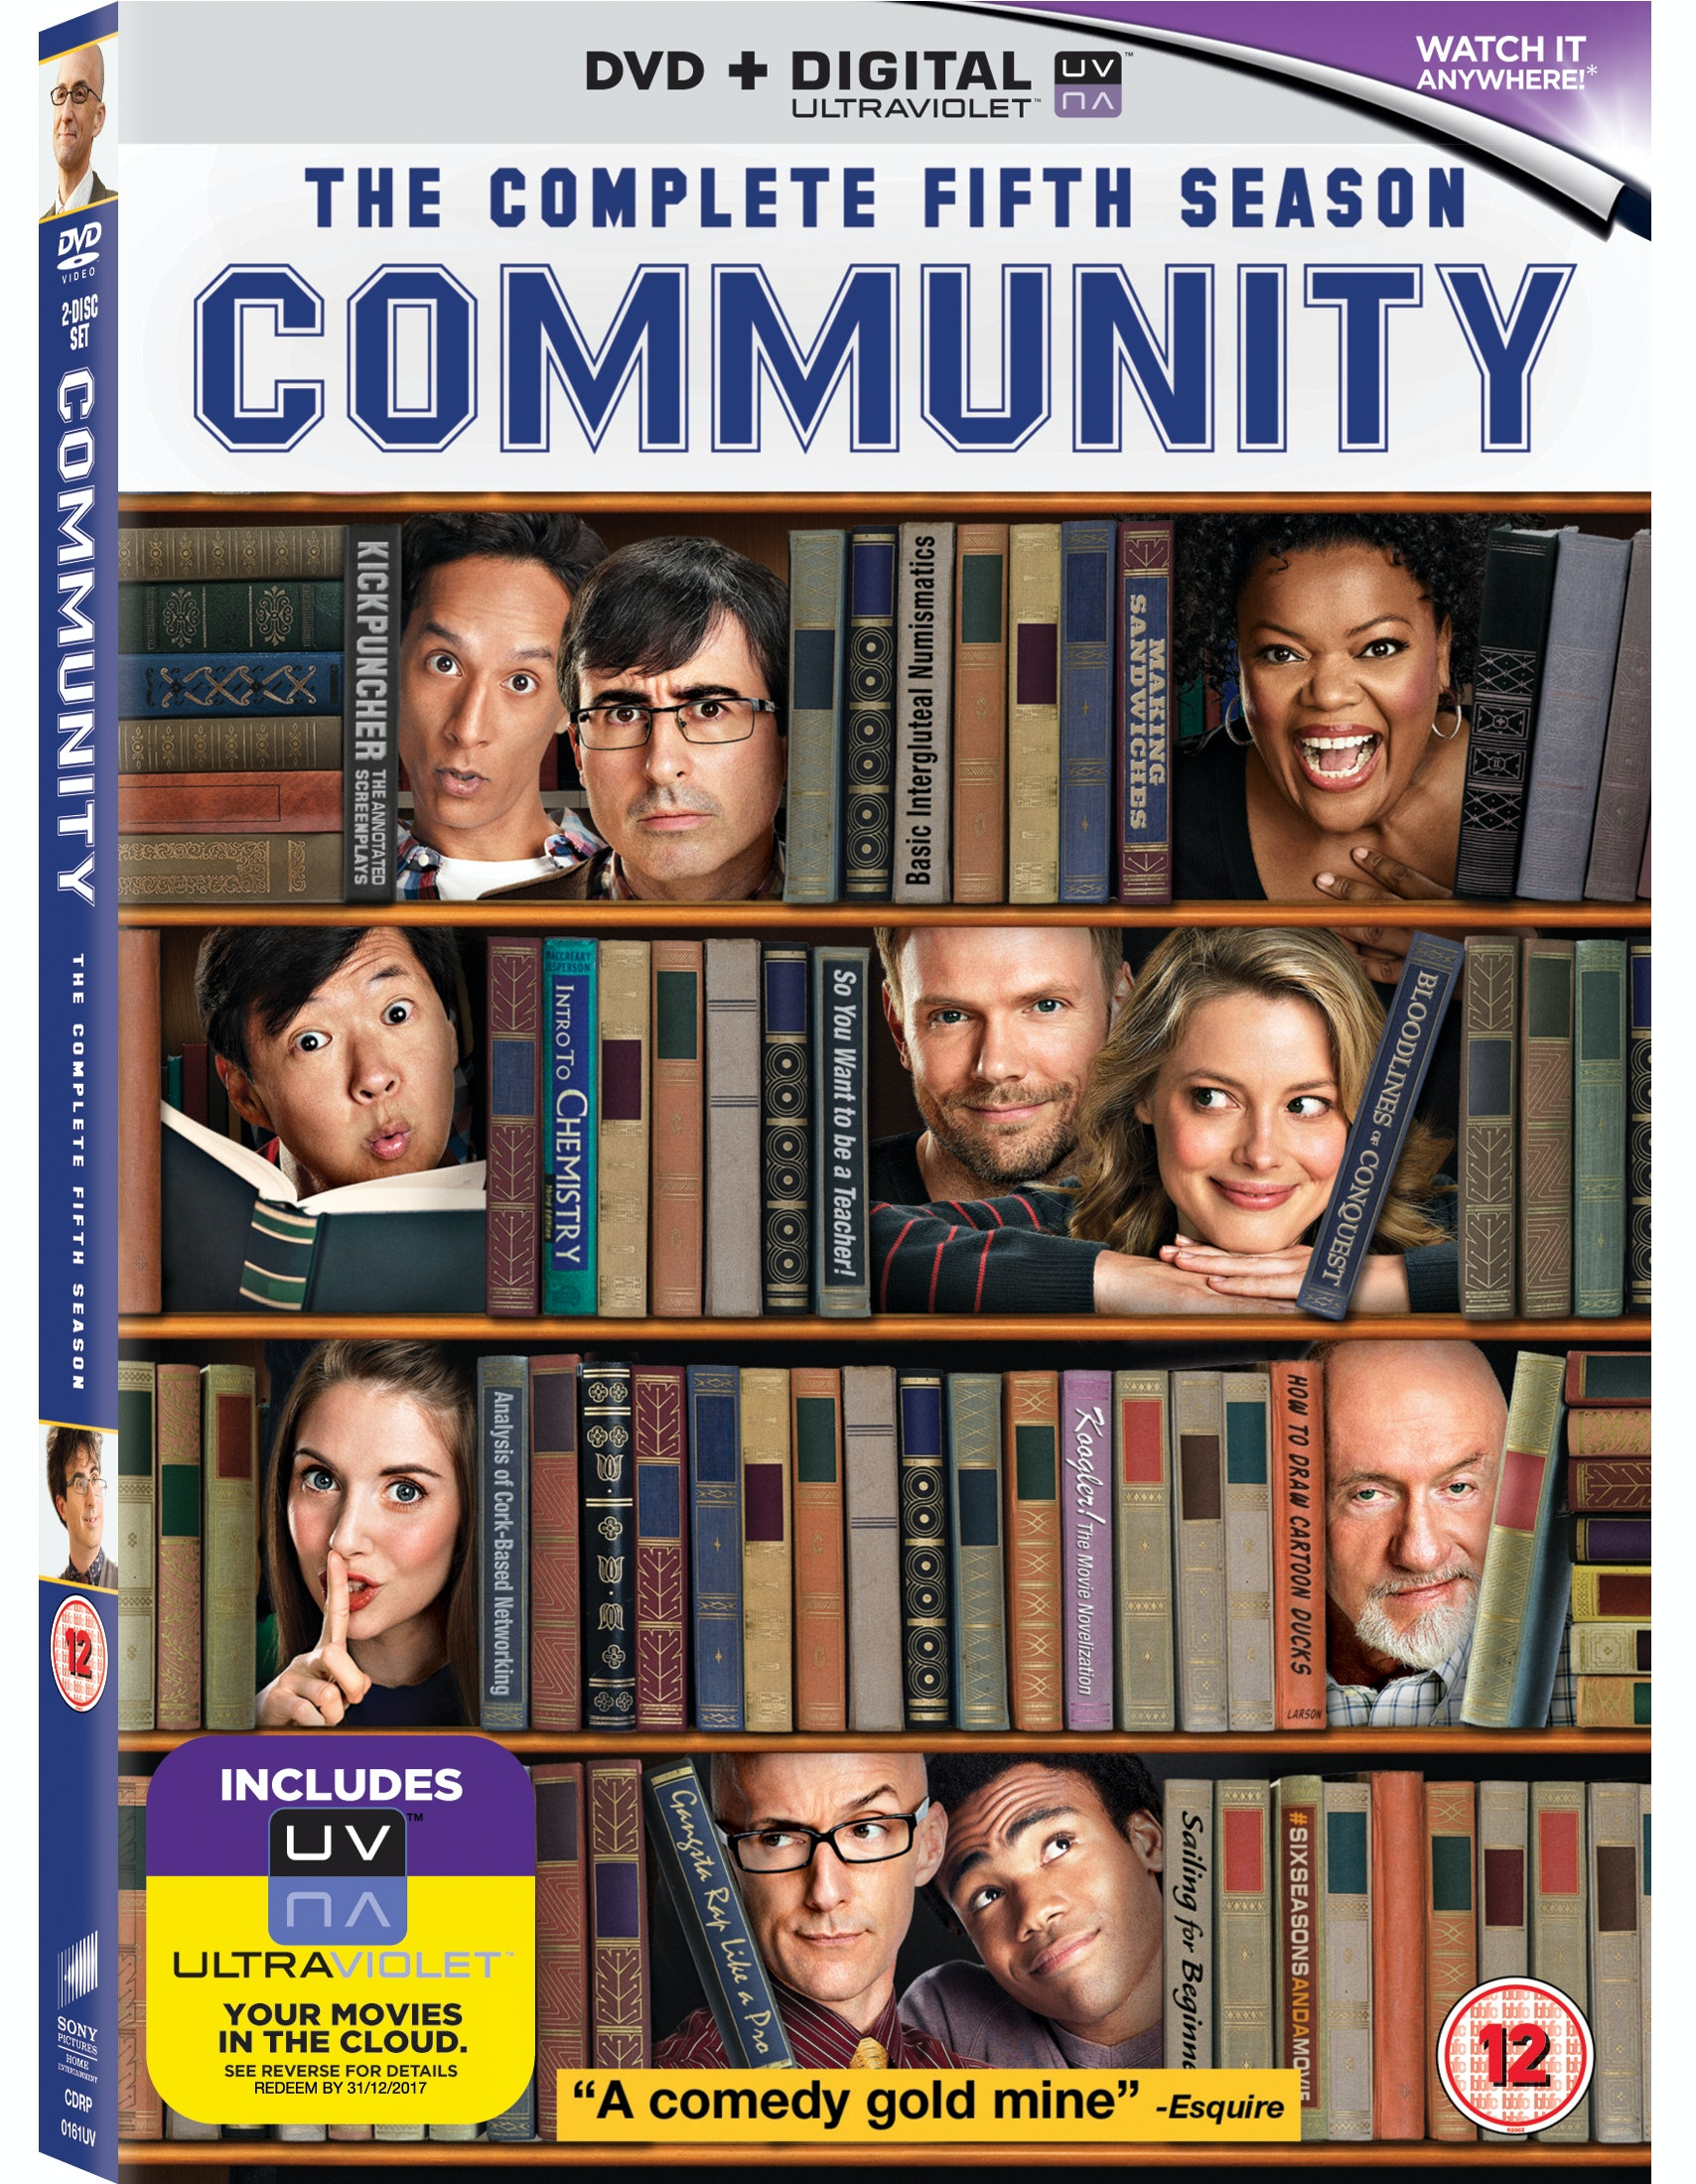 Blu-ray Player and Community: Season 5 sweepstakes